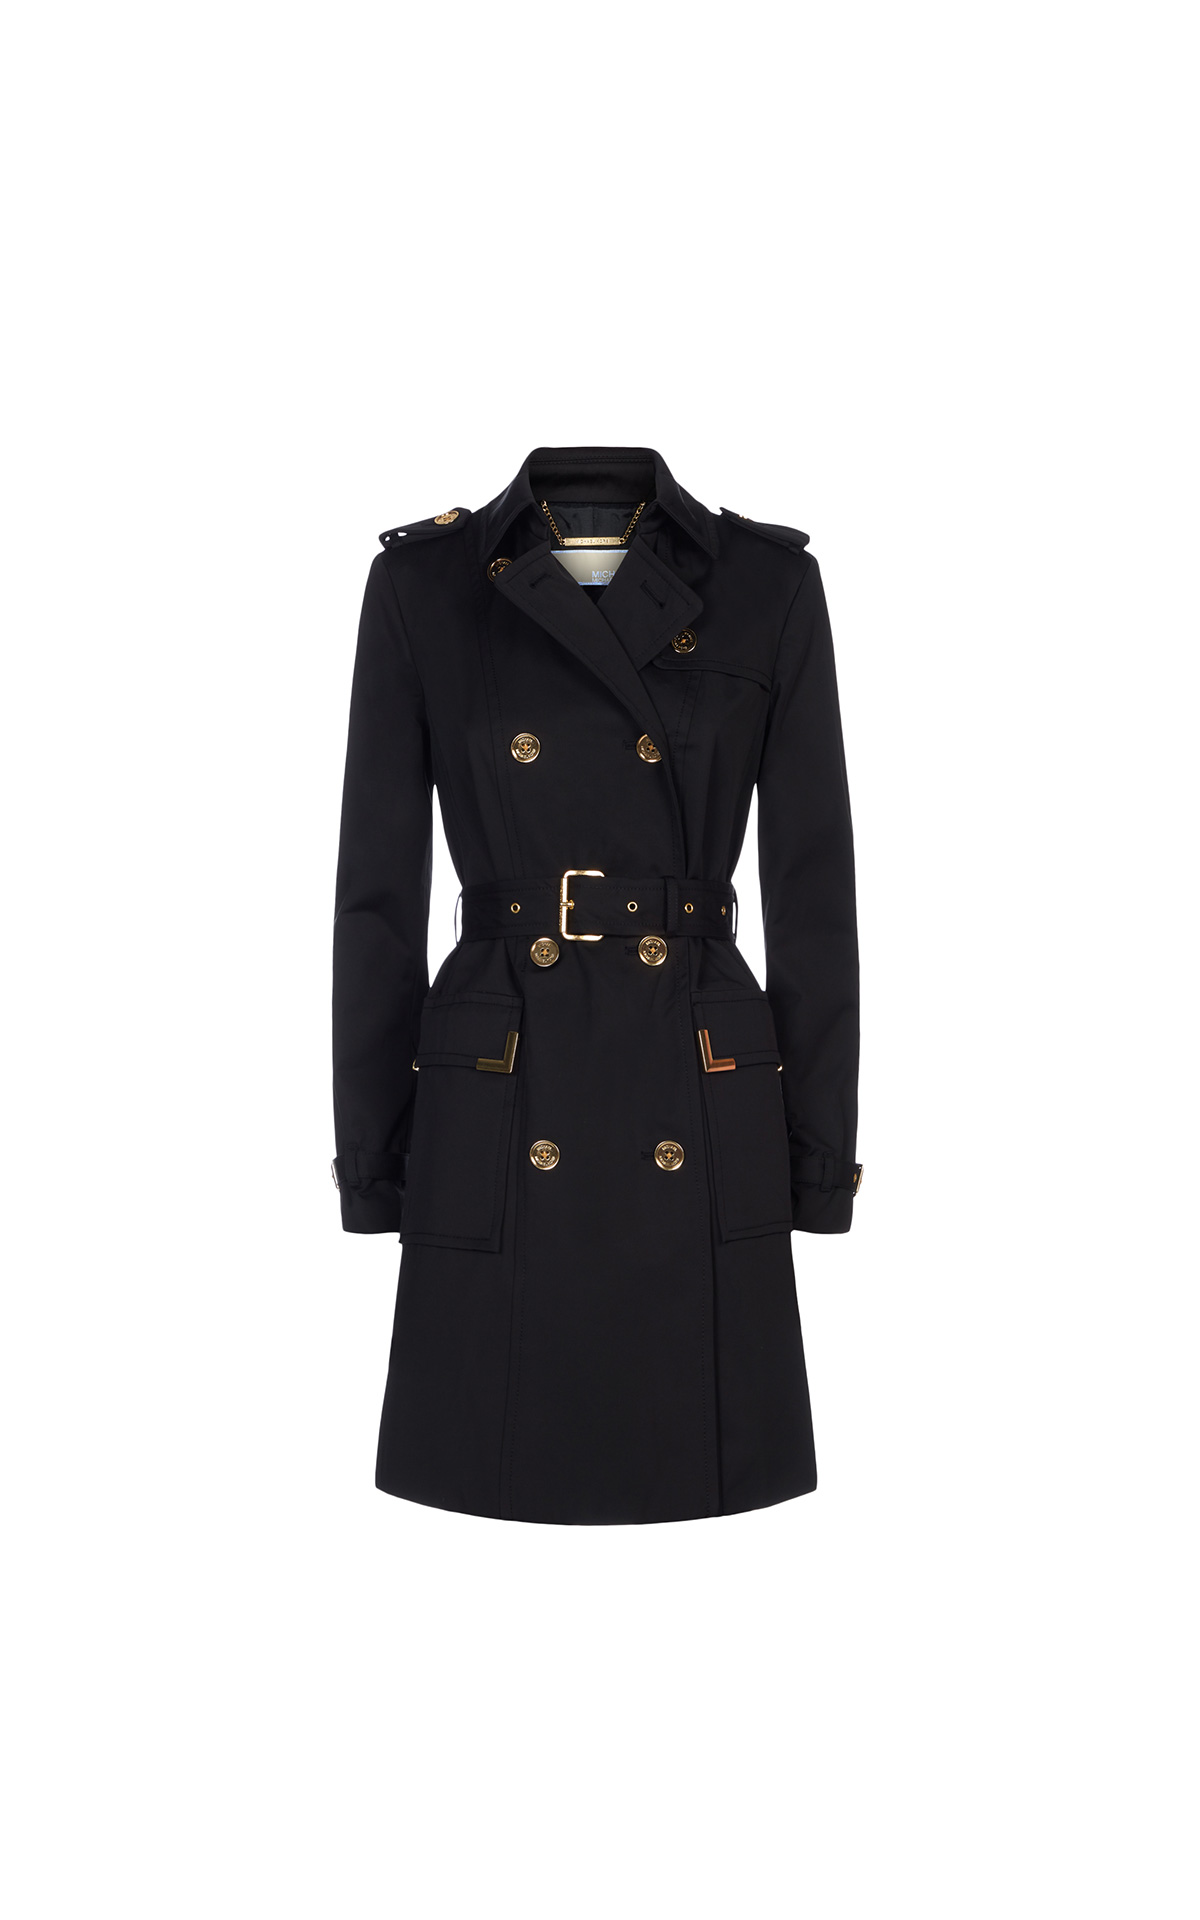 Michael Kors Beverly trench in black at The Bicester Village Shopping Collection